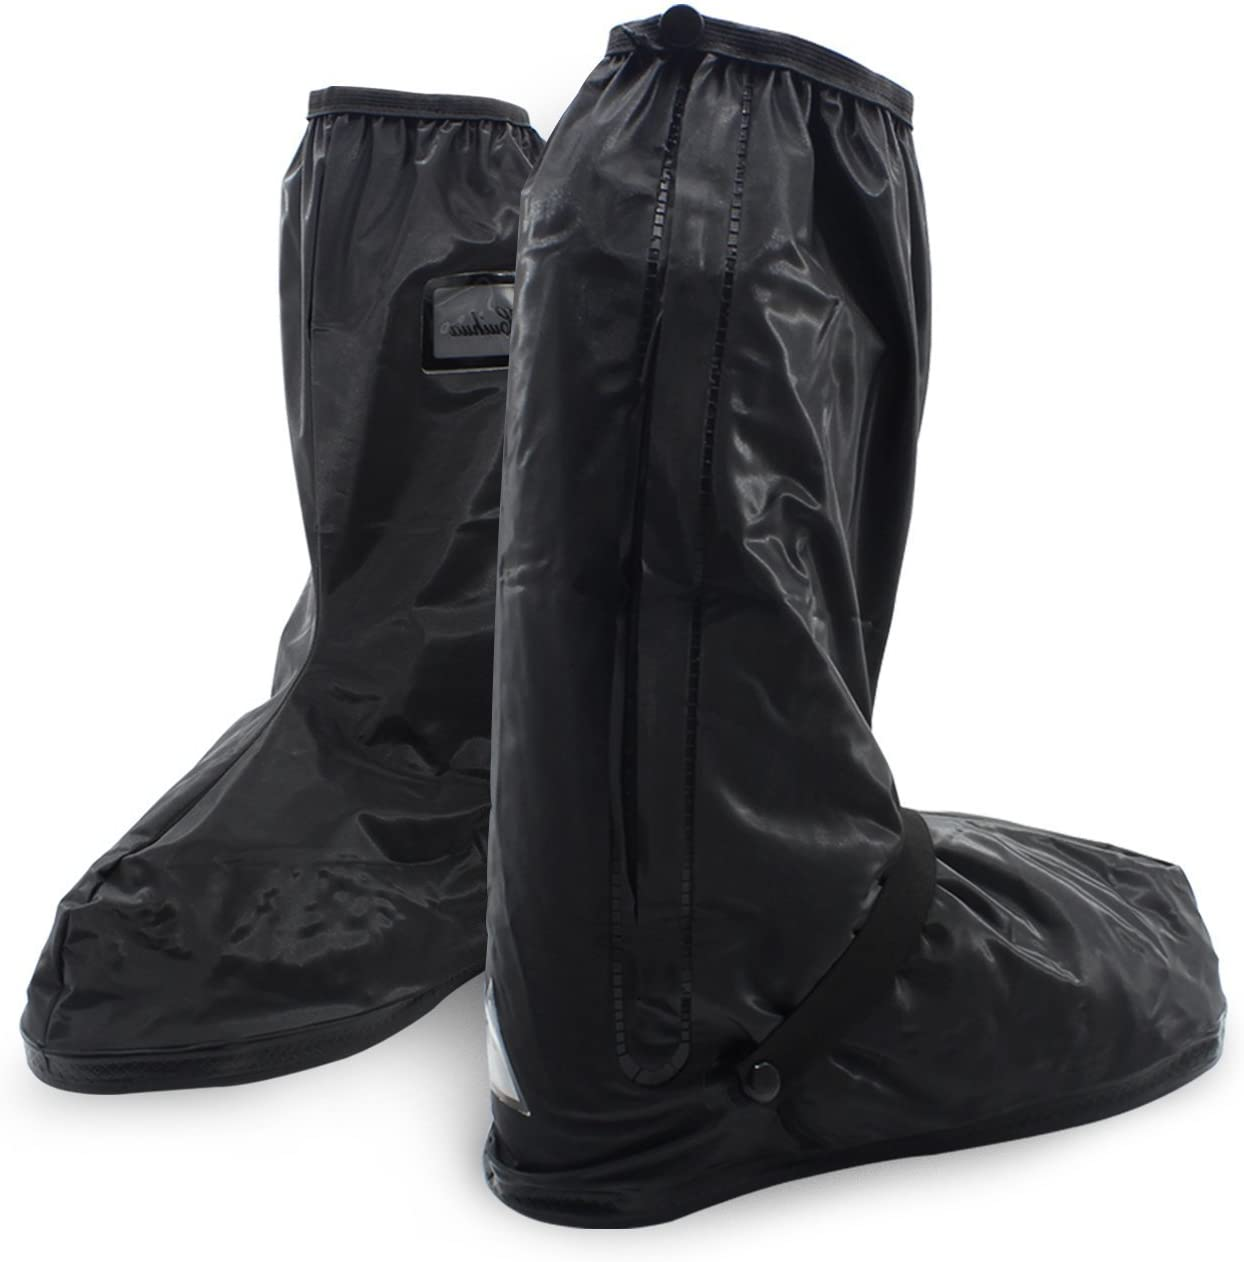 Foldable Portable Waterproof Motorcycle Bike Boot Shoes Cover SHARBAY INC Reusable Shoes Cover Rainstorm Rainsuit Rainy Day Rain Gear Shoes Boots Cover with Side Zippered for Men Women